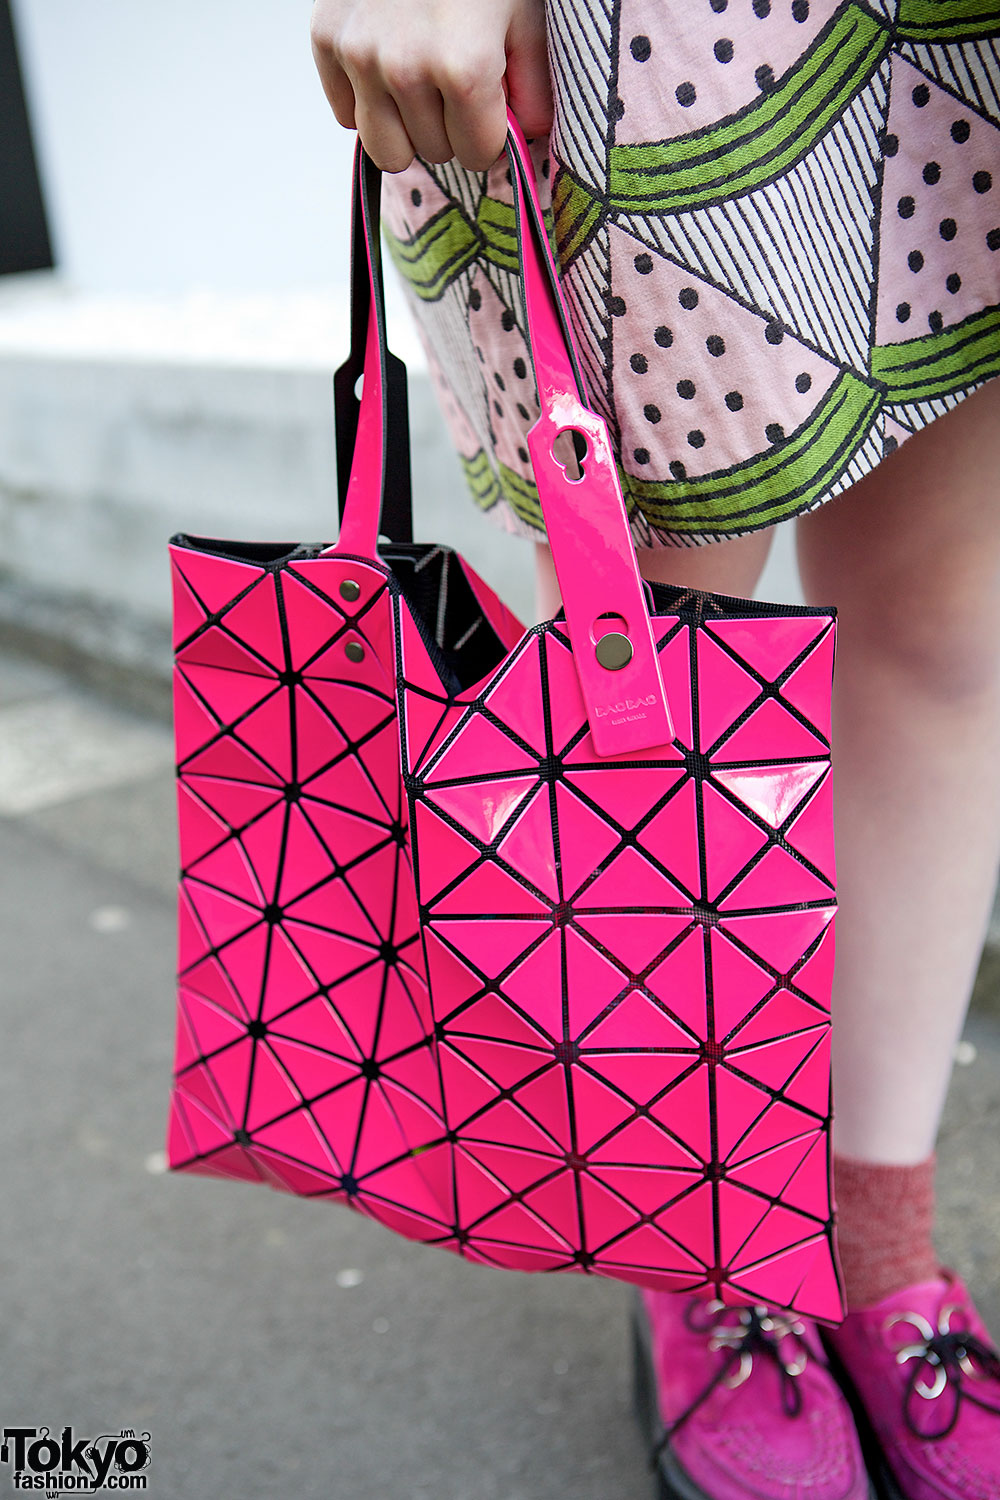 I Am I Watermelon Dress Amp Issey Miyake Bao Bao Bag In Harajuku